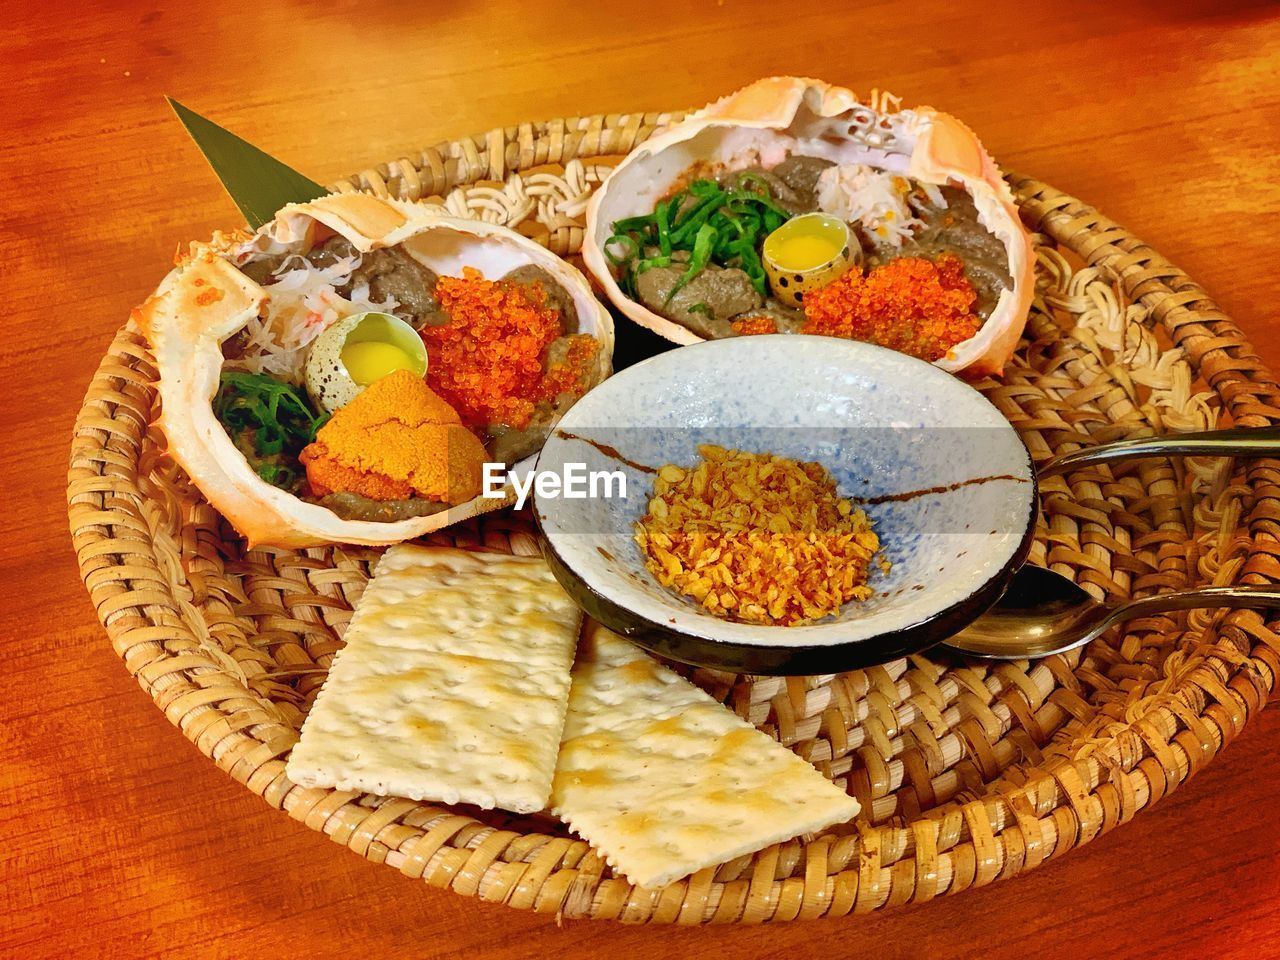 food and drink, food, freshness, table, ready-to-eat, indoors, still life, healthy eating, bowl, close-up, no people, high angle view, plate, wellbeing, asian food, serving size, meat, rice - food staple, meal, vegetable, crockery, place mat, temptation, garnish, japanese food